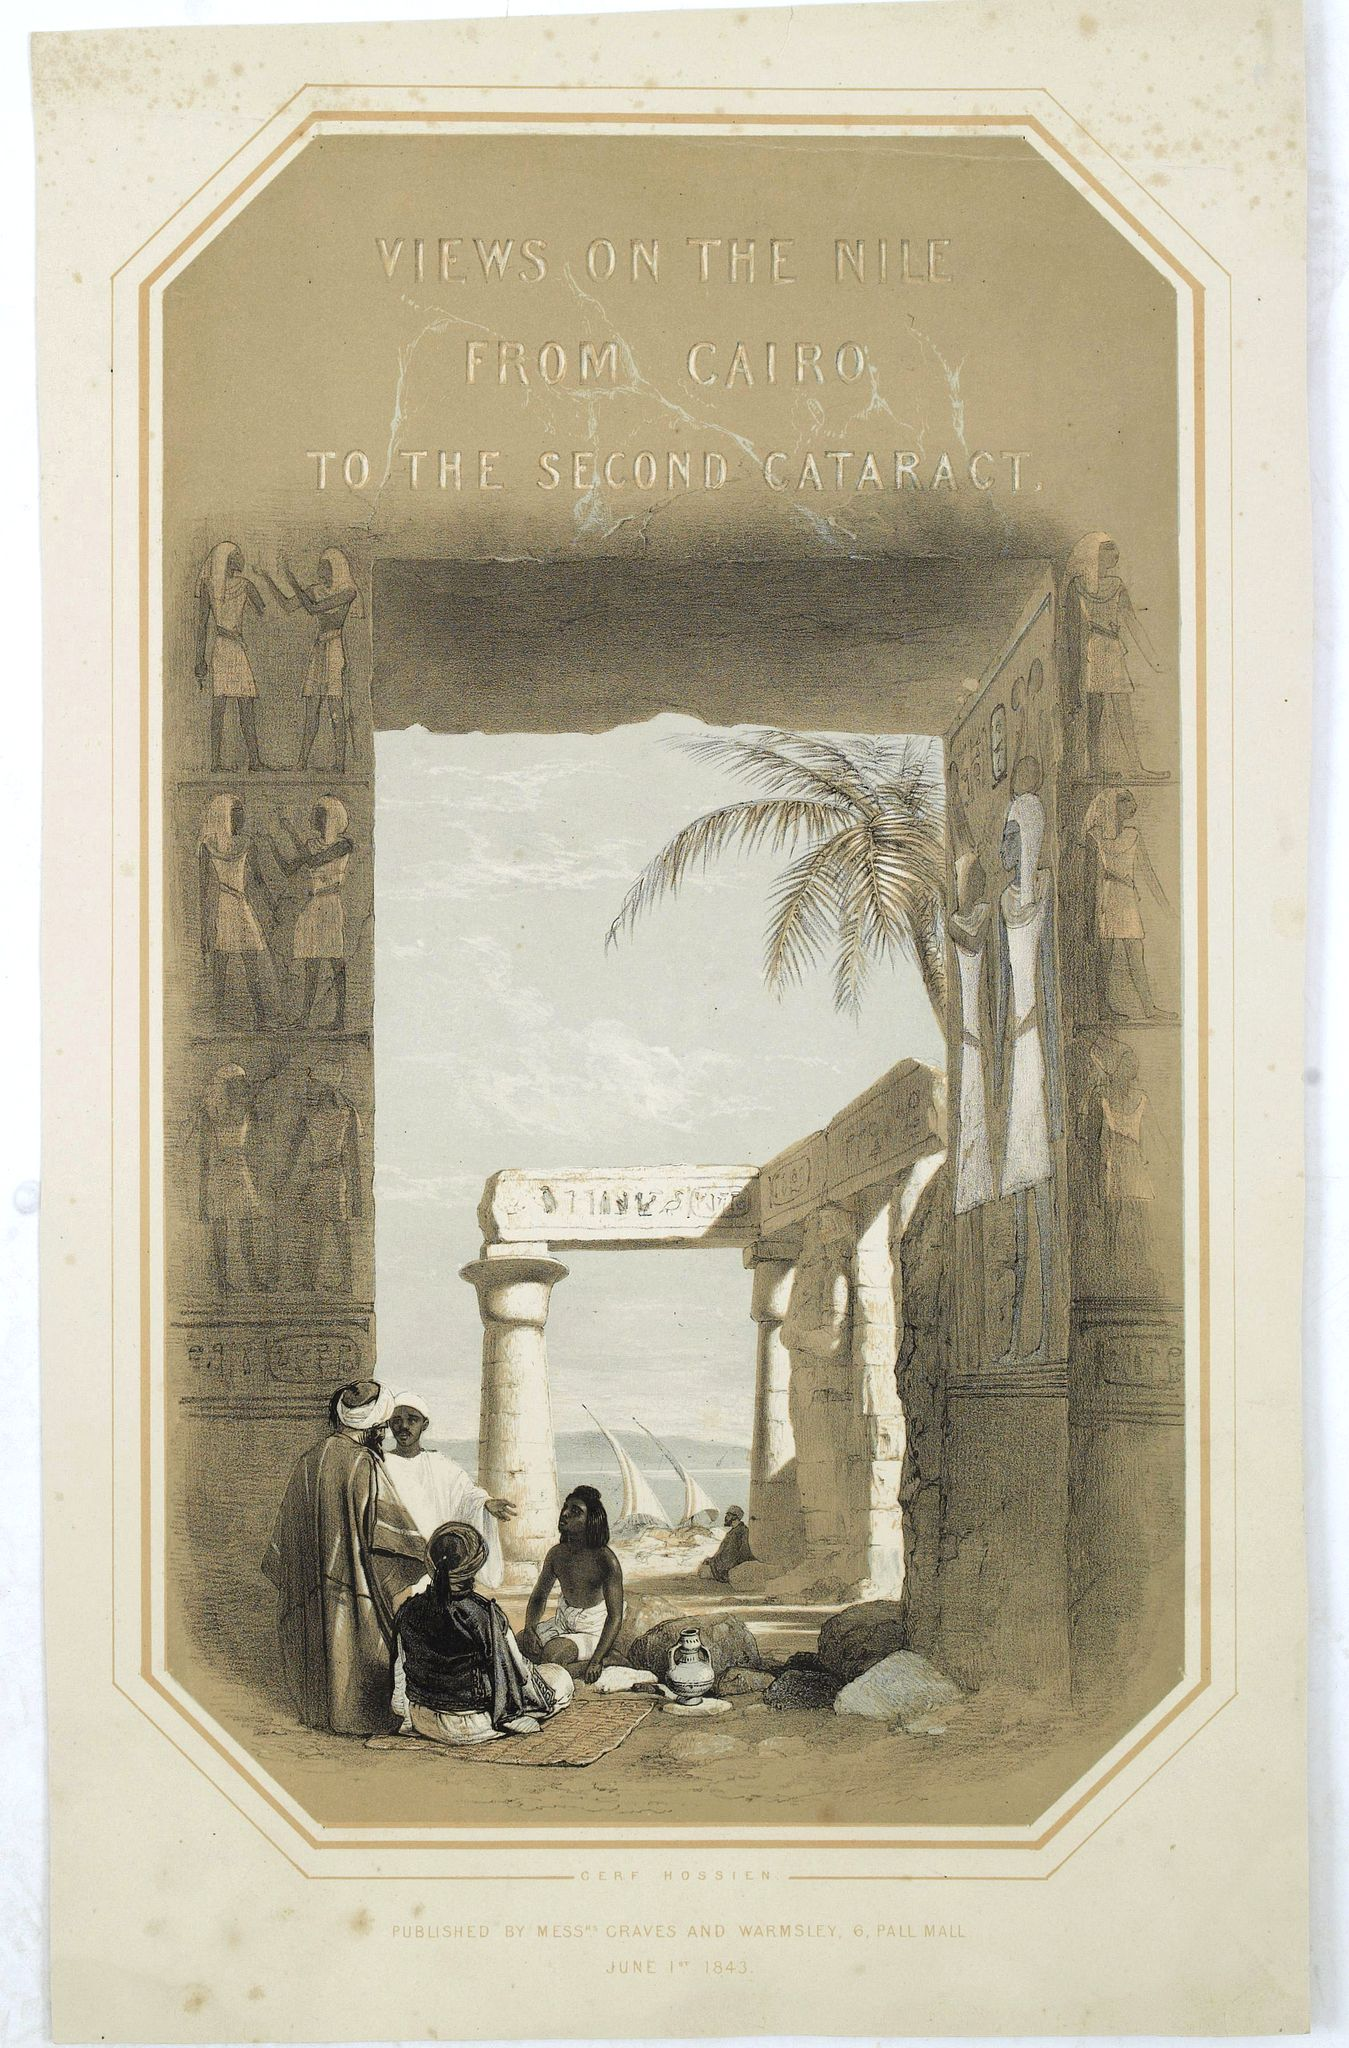 JONES, O. -  (Title page) Views on the Nile from Cairo to the second cataract.